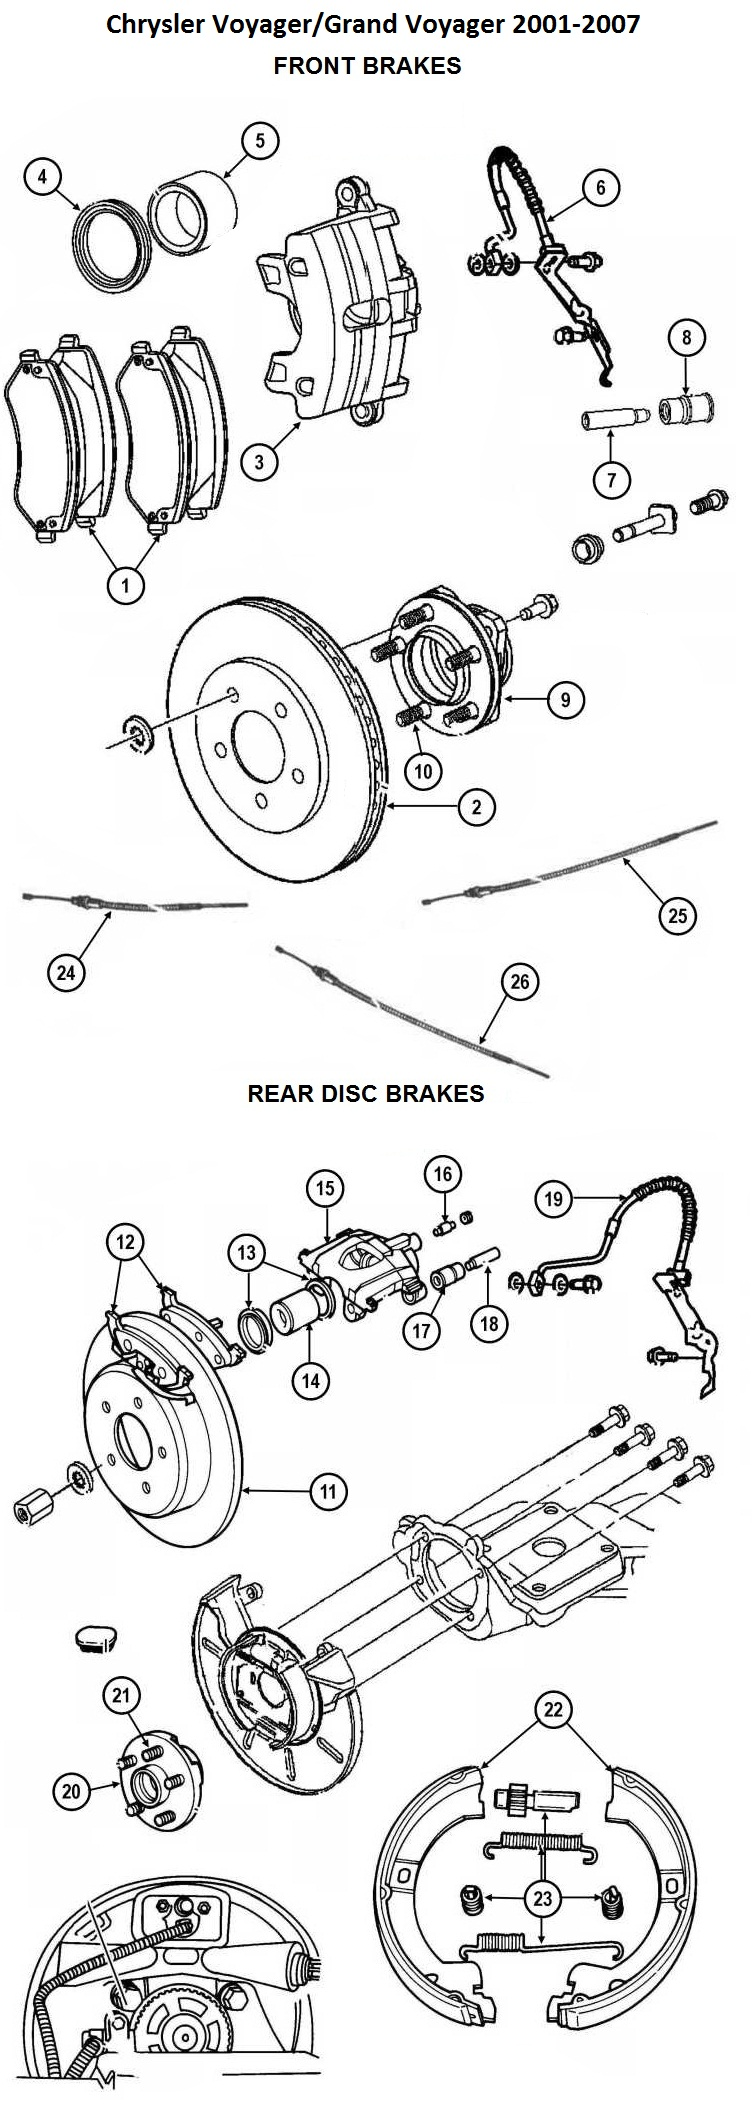 2004 Dodge Intrepid Engine Diagram Chrysler Crossfire Exhaust Diagram